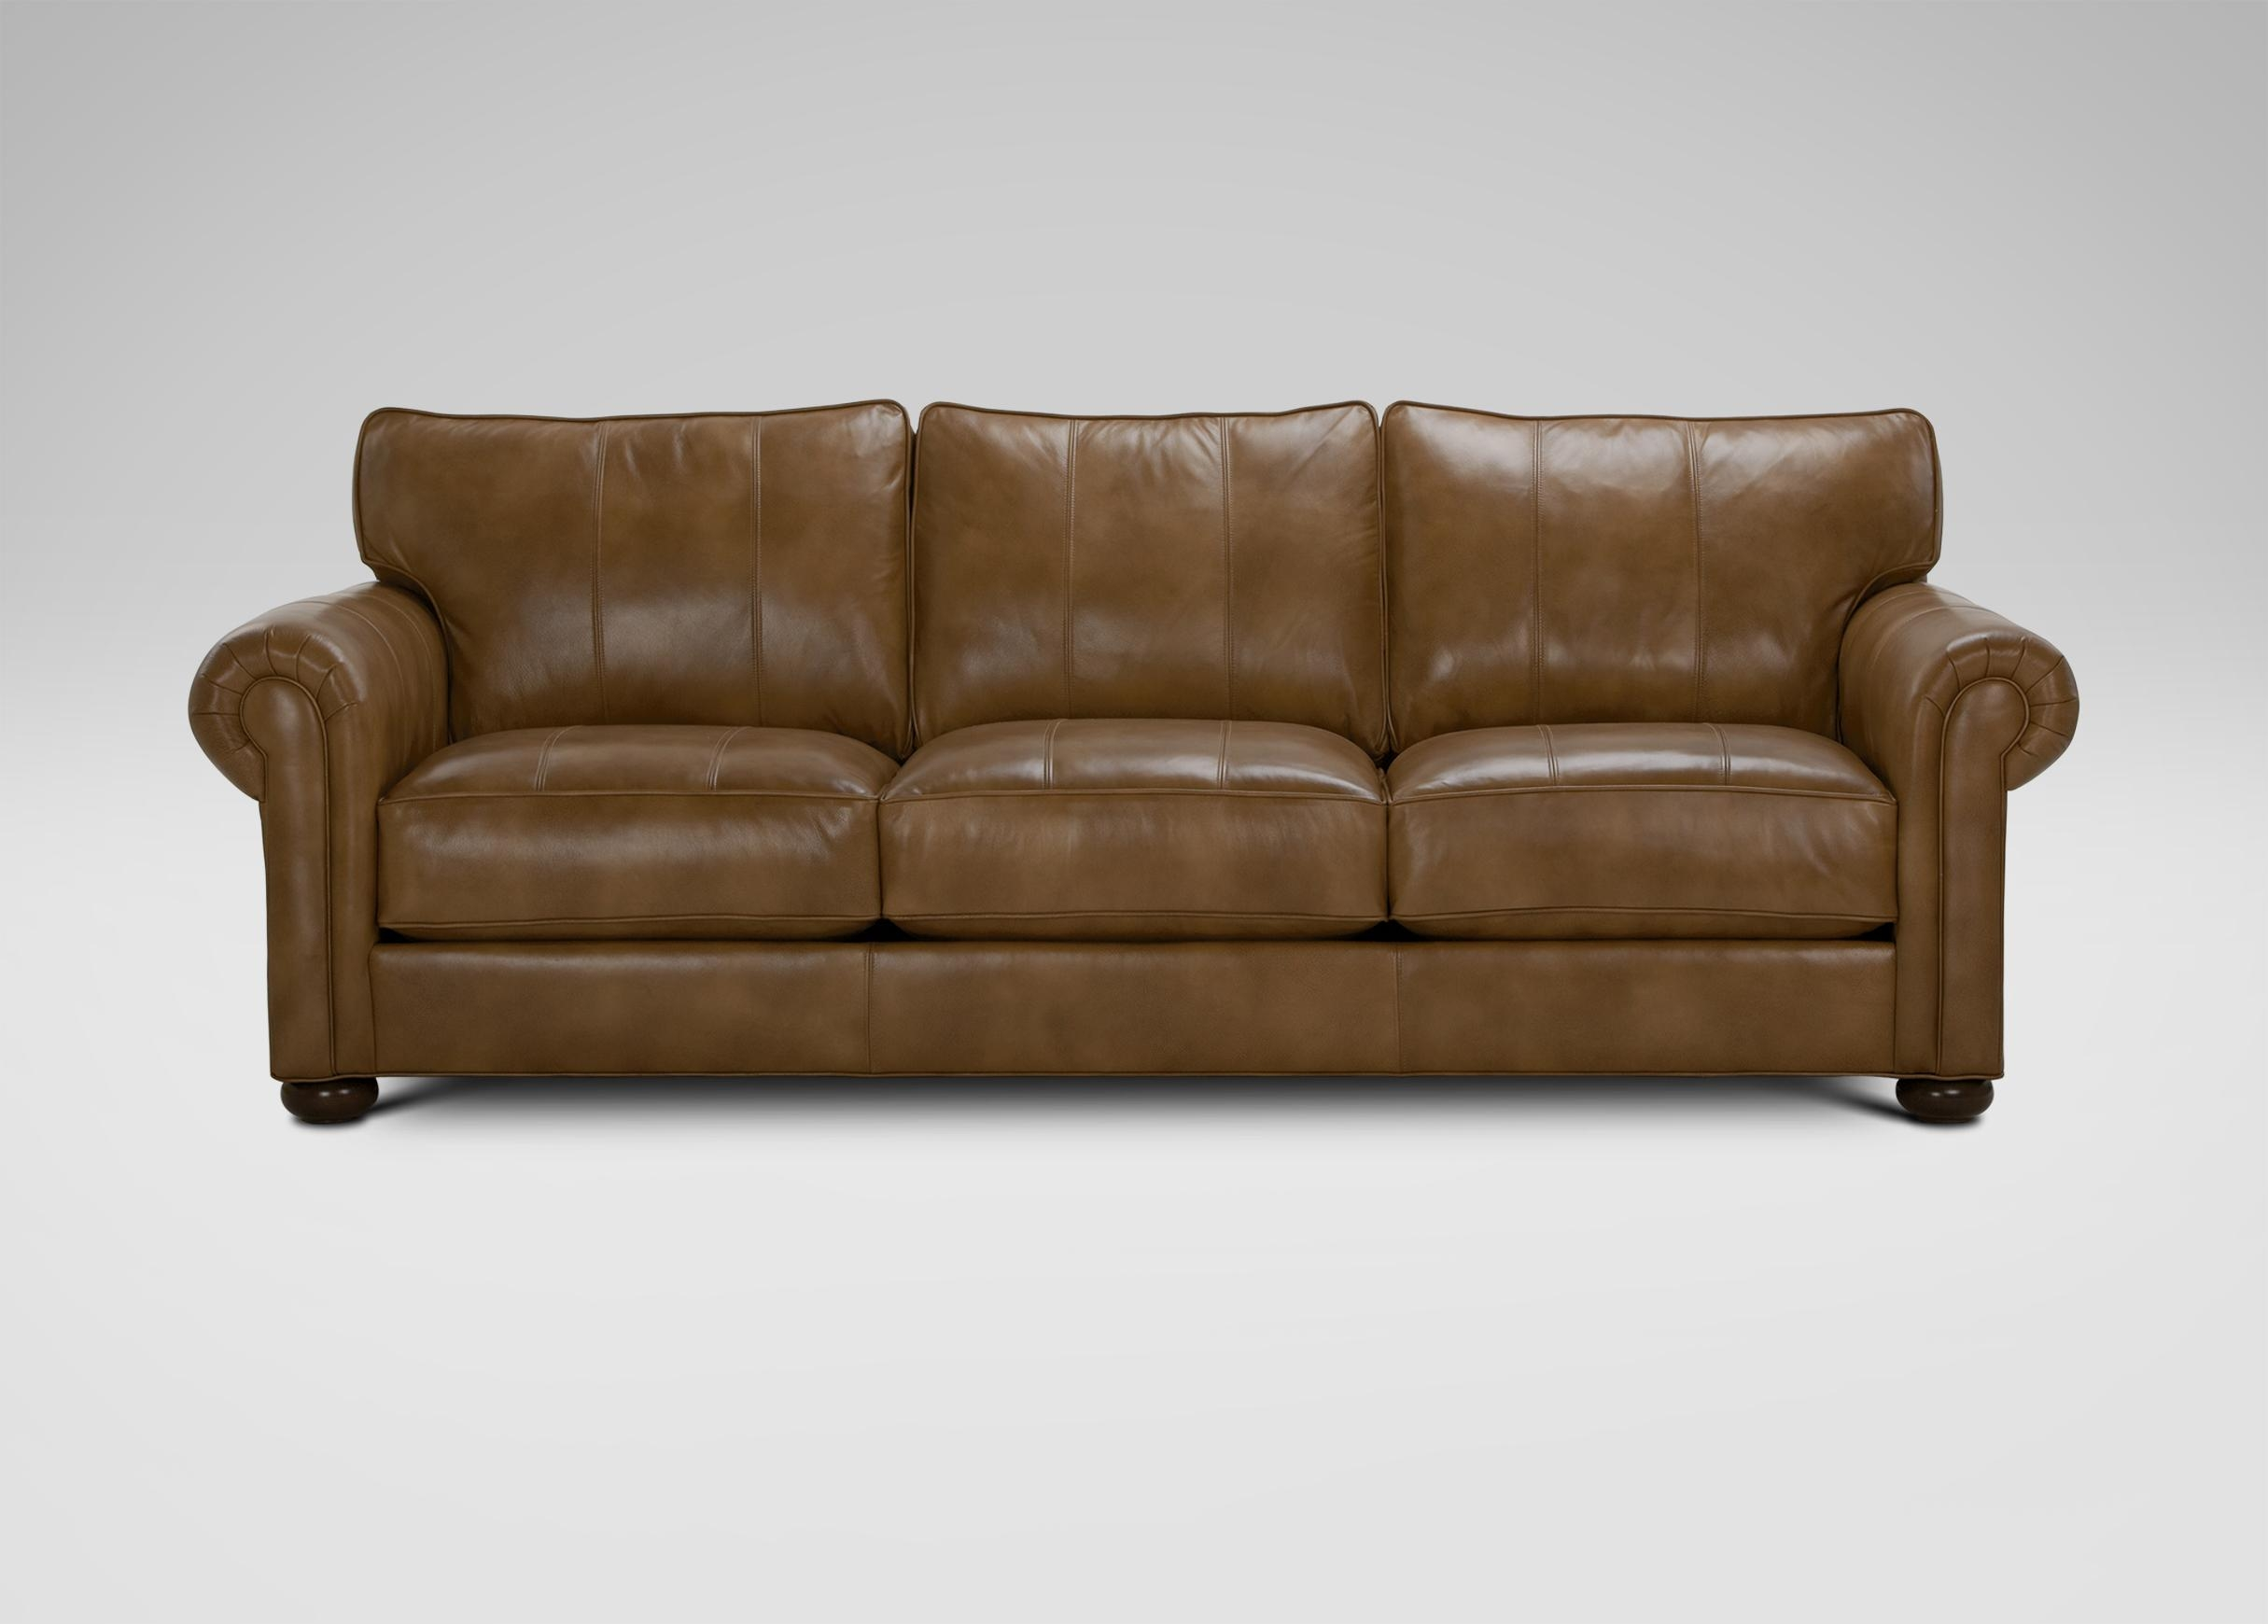 Richmond Leather Sofa | Sofas & Loveseats Pertaining To Richmond Sofas (Image 10 of 20)